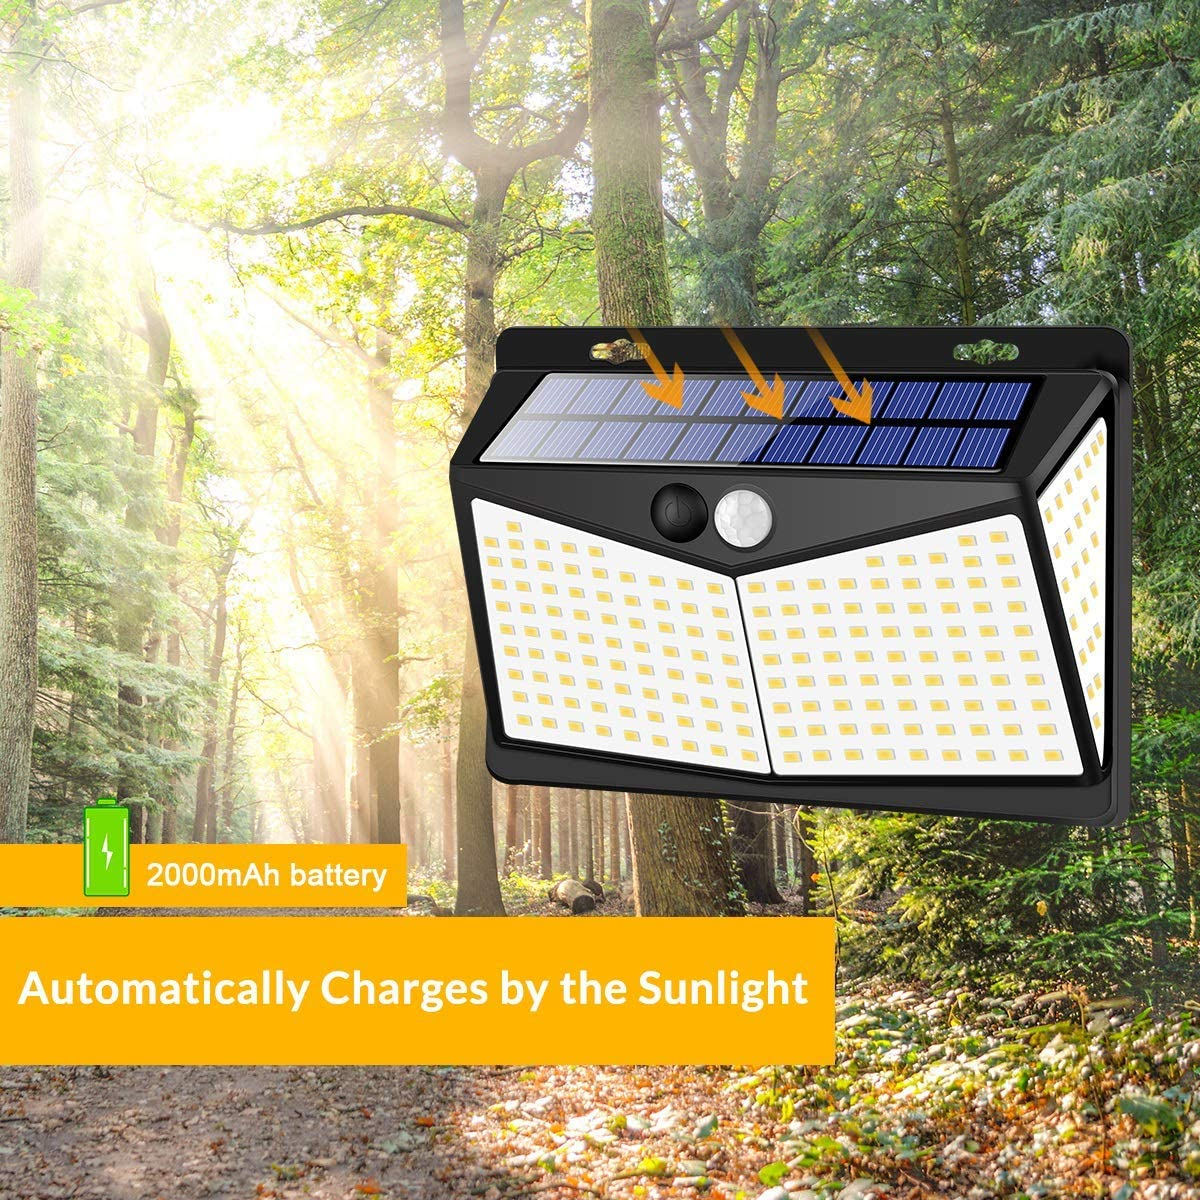 Solar Lights Outdoors 208 LED 3 Modes, Security Motion Sensor Night Lights, Wire-Free, IP65 Waterproof, Solar LED Light for Garden, Fence, Patio, Garage and Stairs 4 Pack